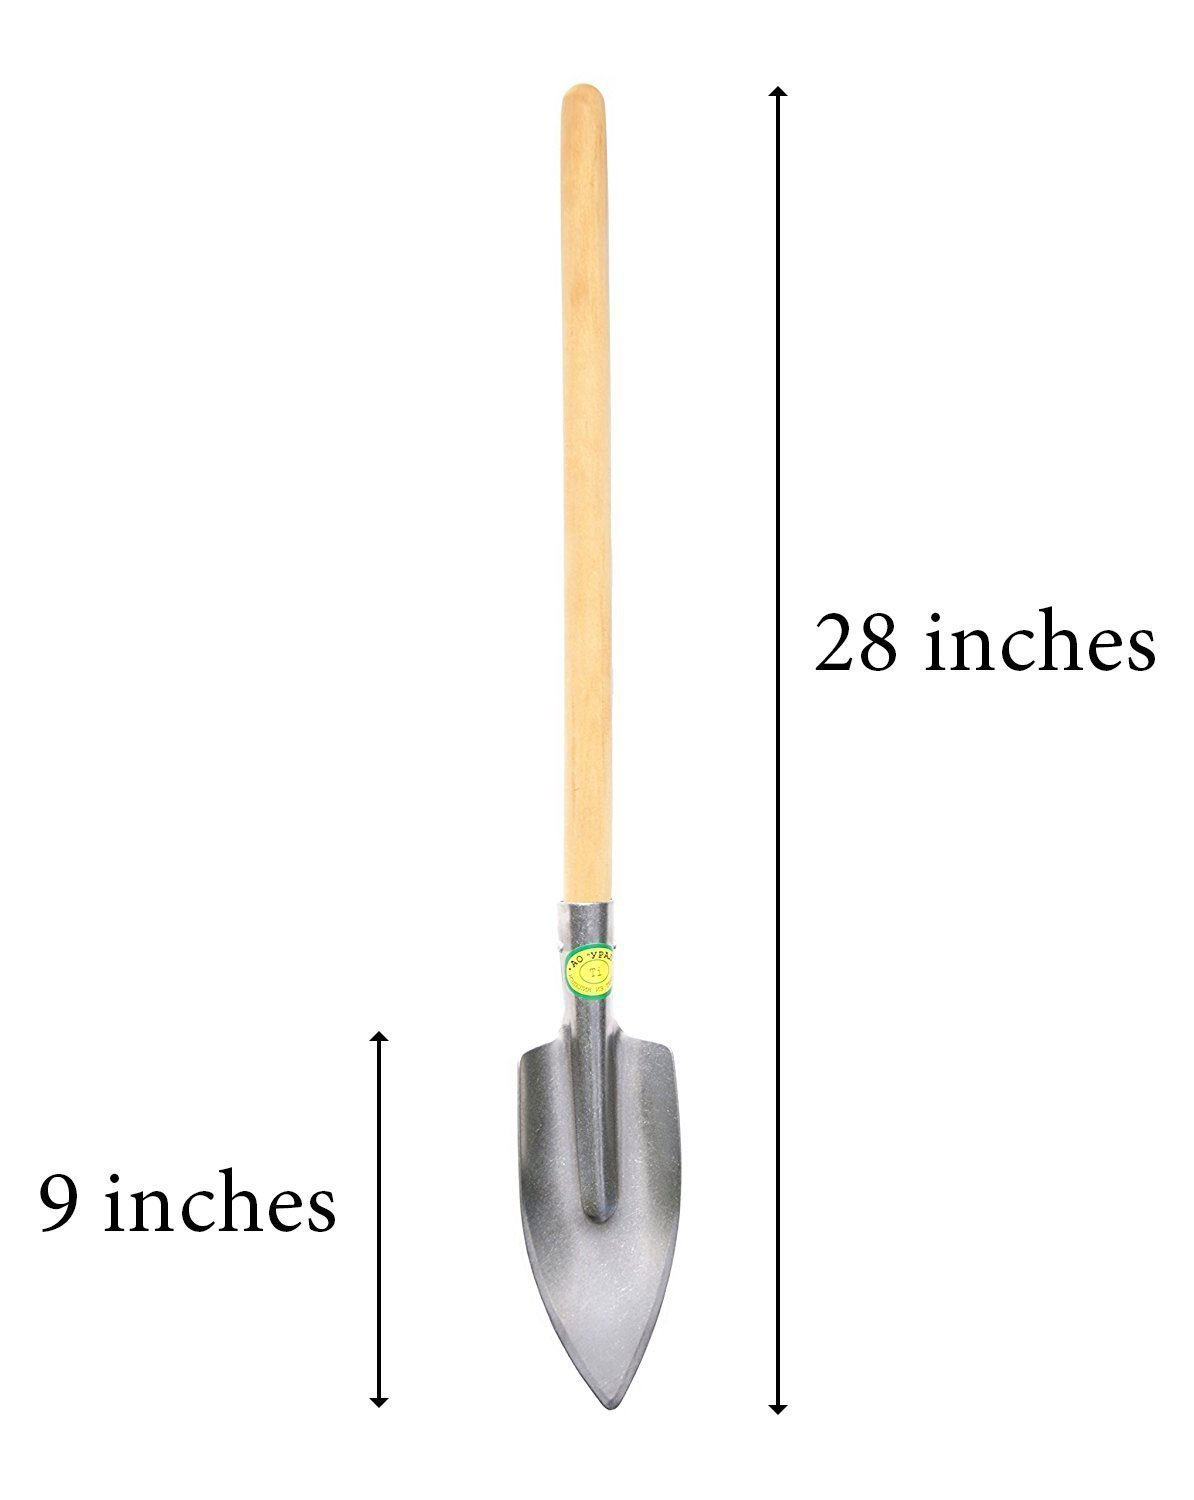 Titanium Super Durable Long Handled Gardening Trowel